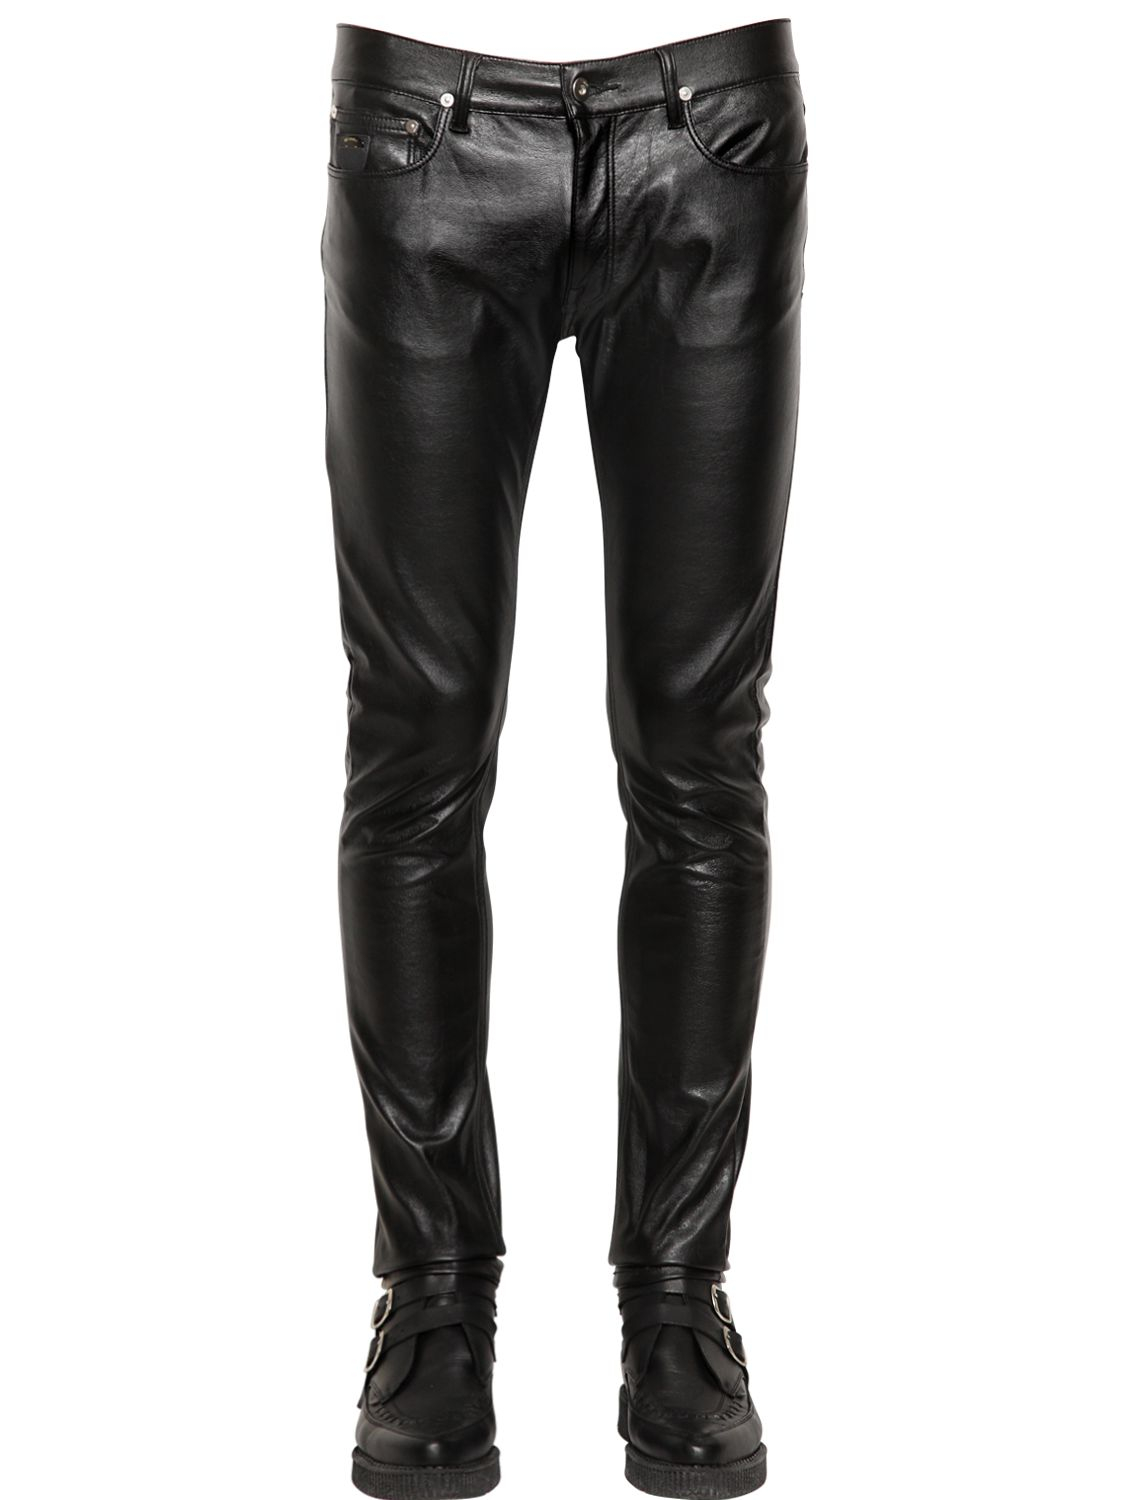 Free shipping BOTH ways on mens faux leather pants, from our vast selection of styles. Fast delivery, and 24/7/ real-person service with a smile. Click or call